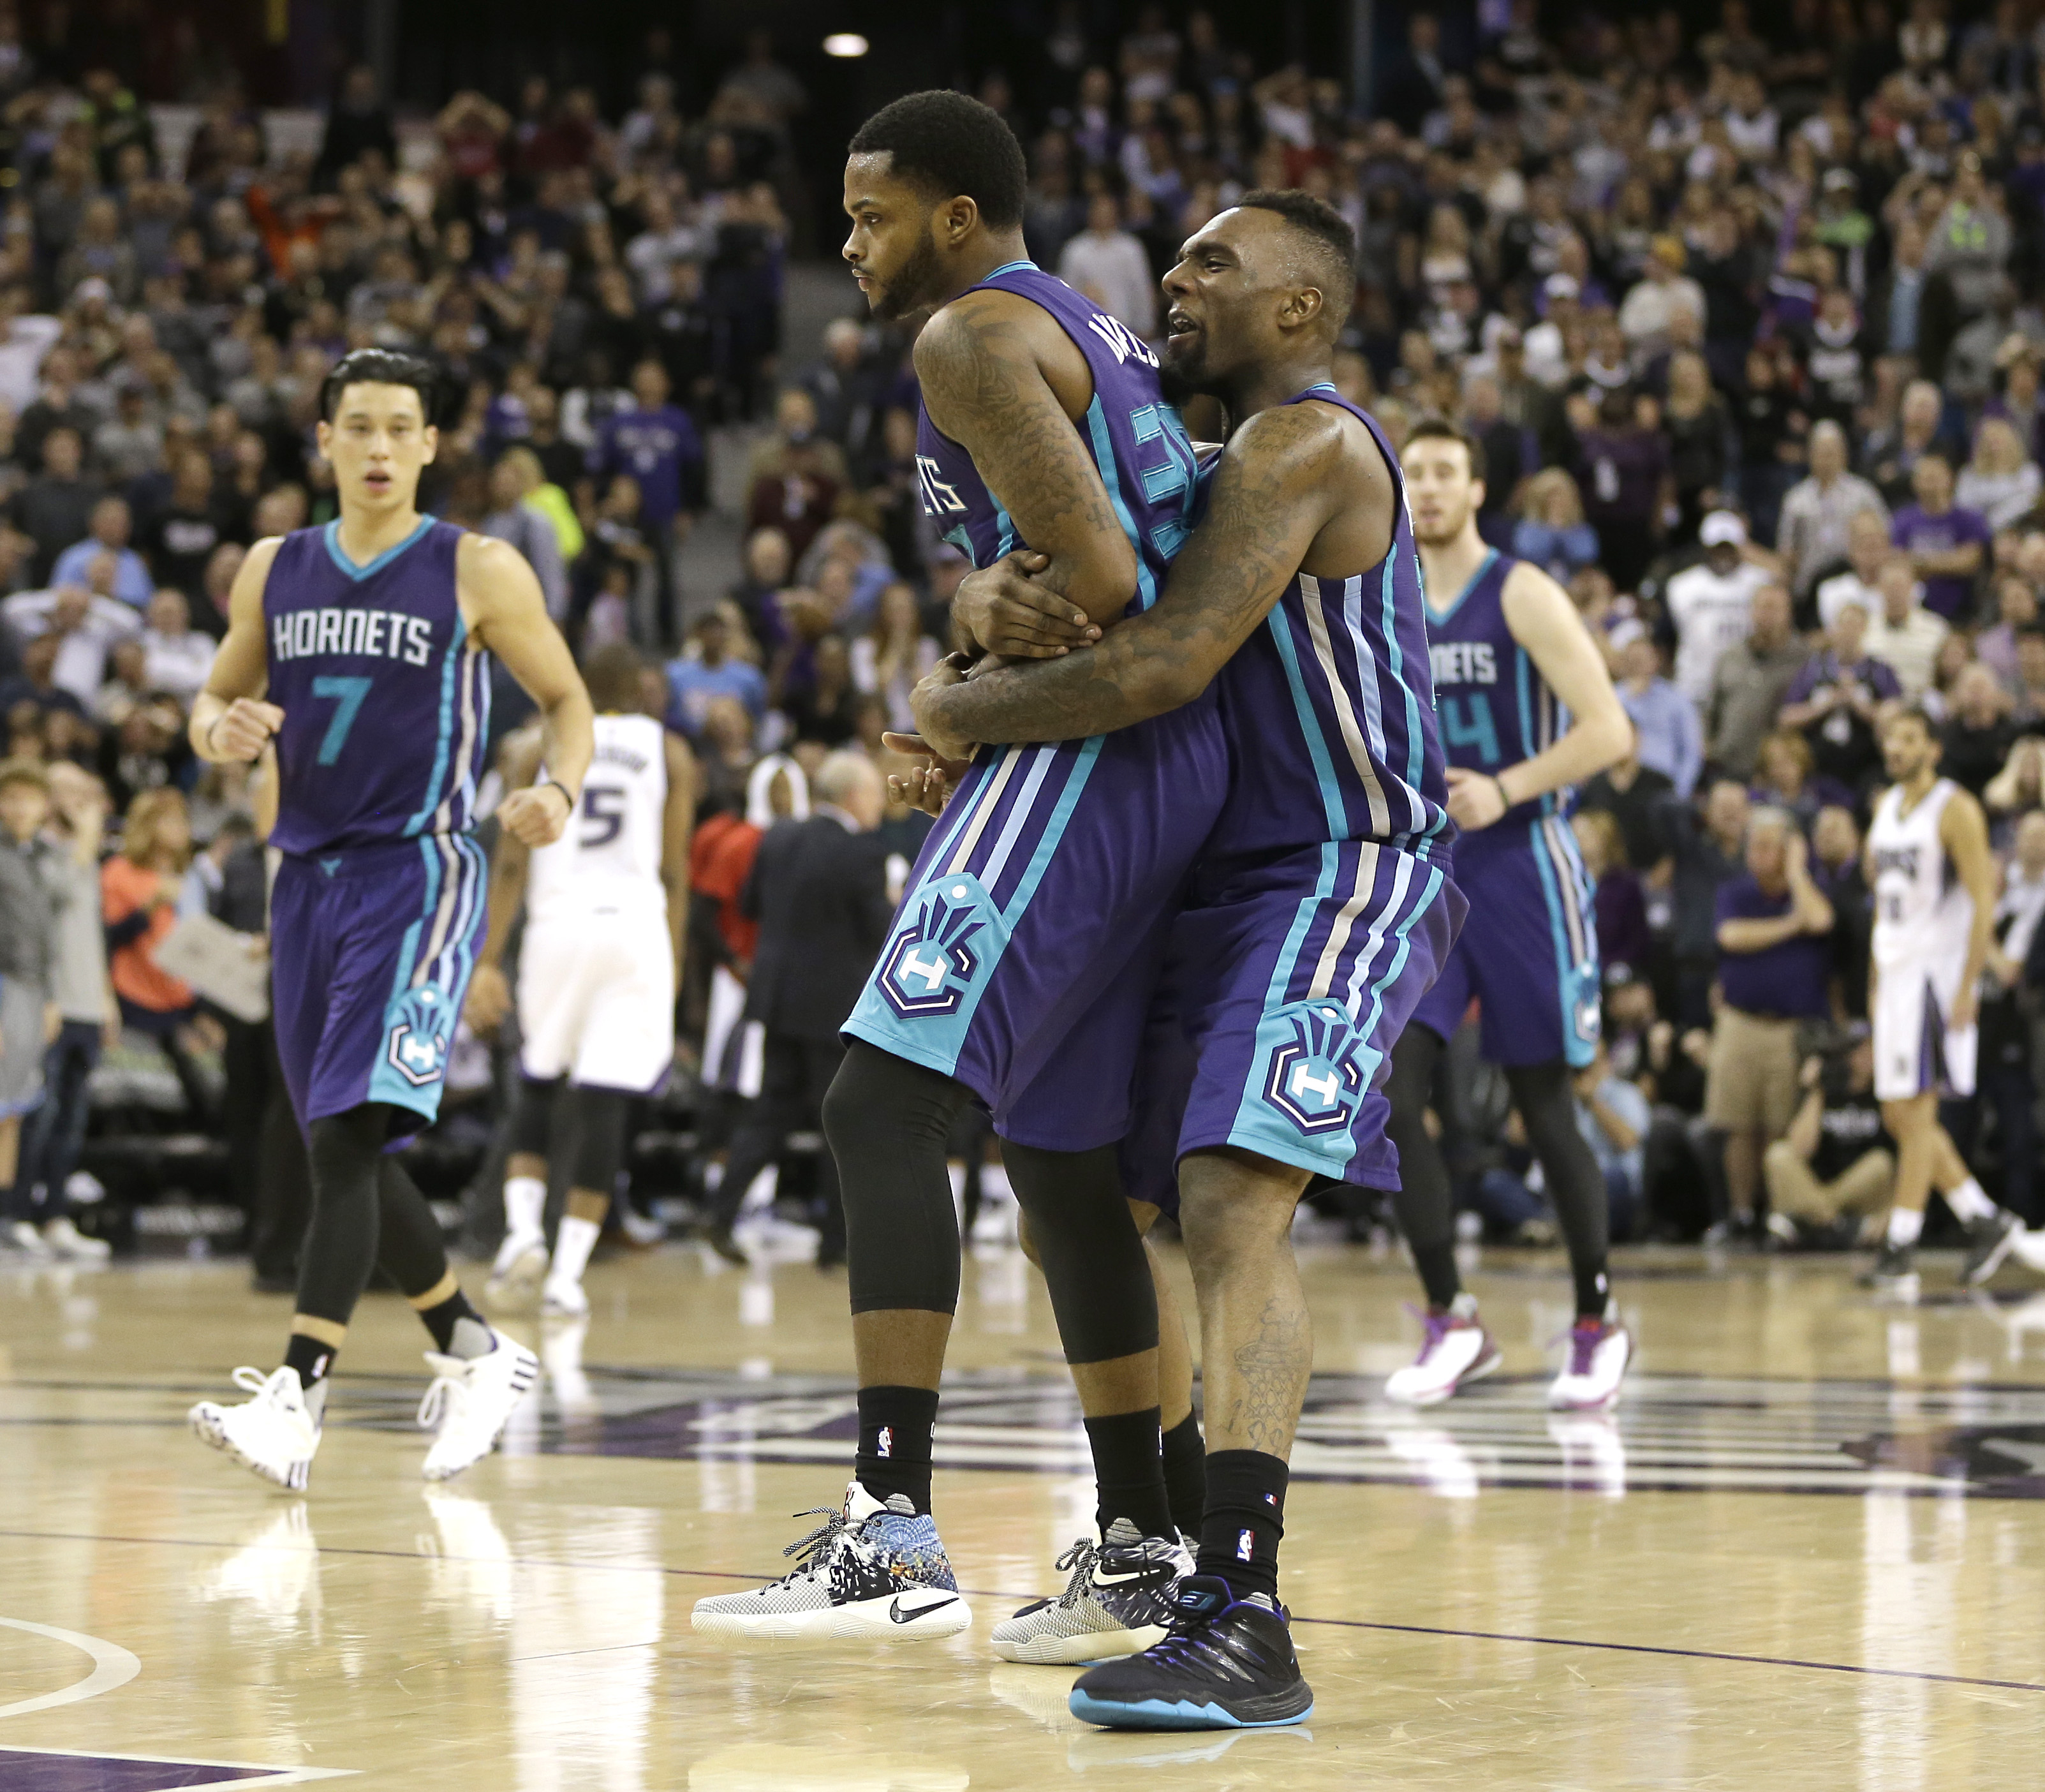 Charlotte Hornets guard Troy Daniels, left, is carried off the court by  Hornets forward P.J. Hairston, right, after Daniels made a 3-point shot to give the Hornets a 129-128 double overtime win over the Sacramento Kings in an NBA basketball game Monday,